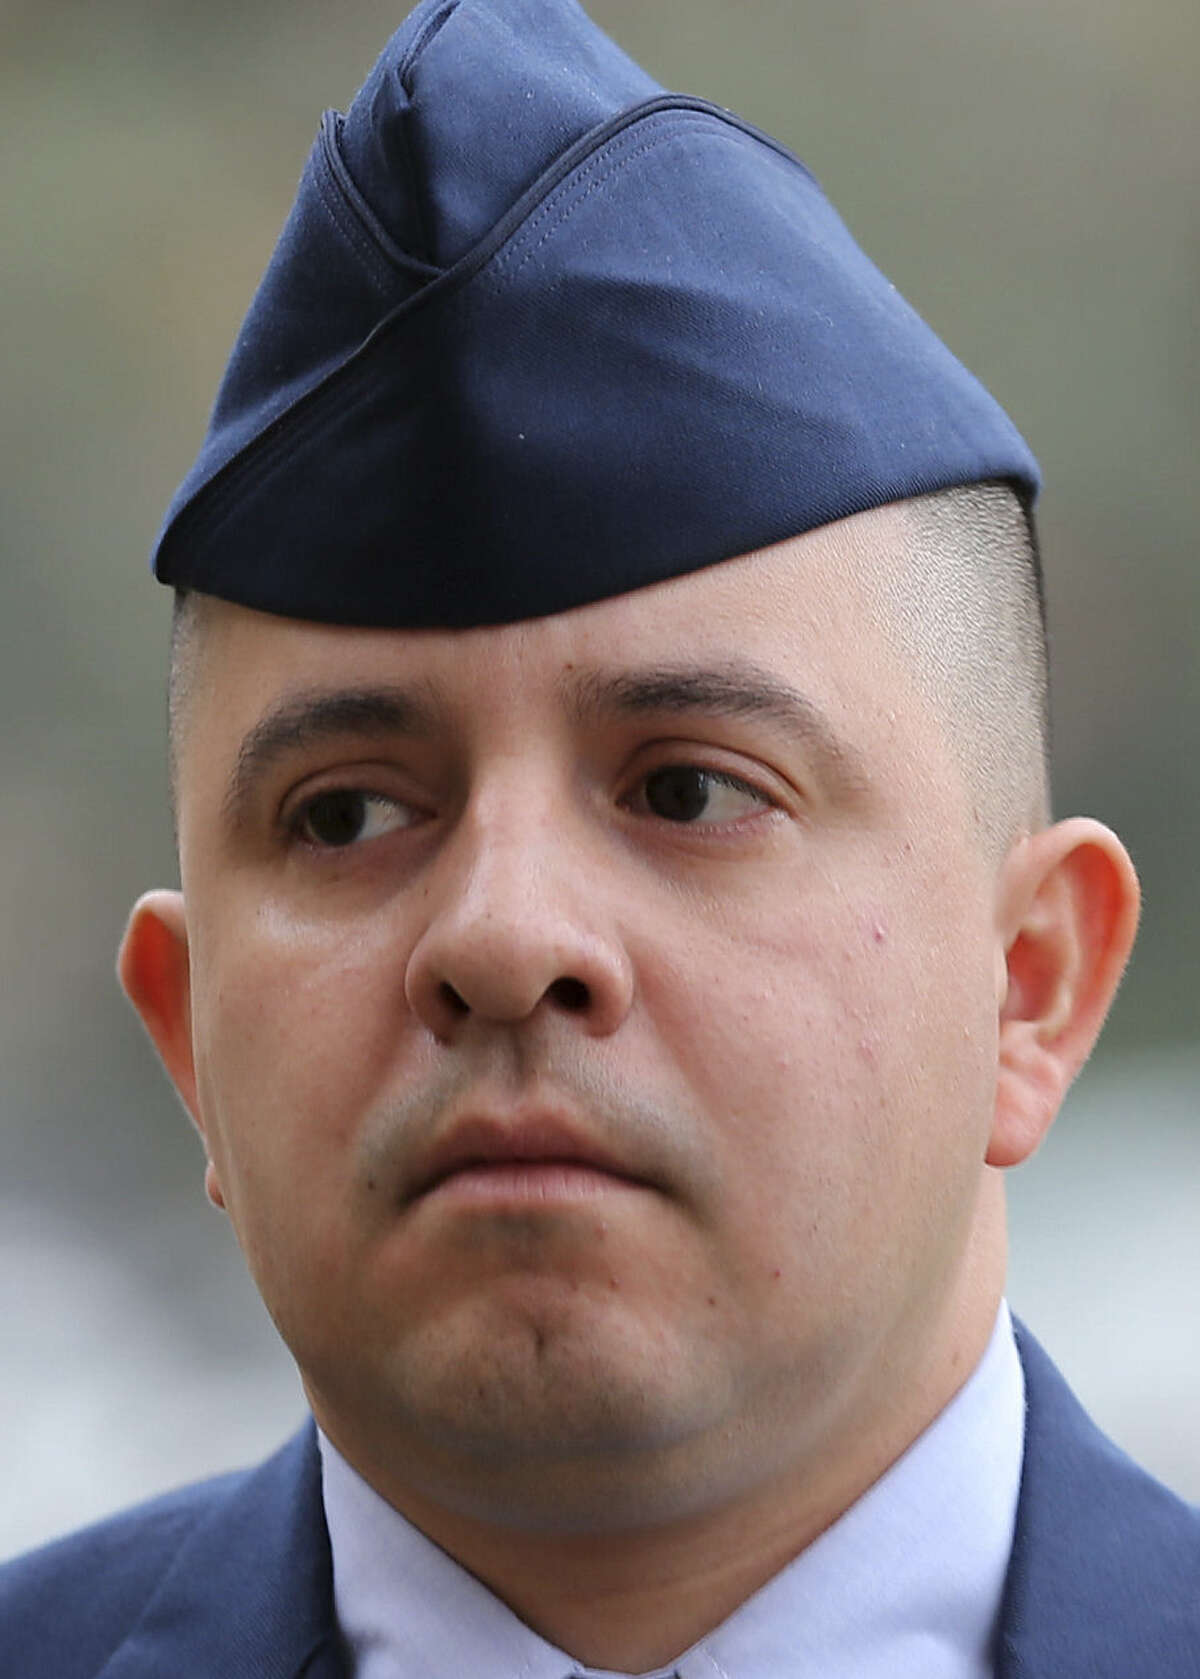 Then-Staff Sgt. Eddy Soto pleaded guilty to having inappropriate relationships with five women but fought the rape allegation.